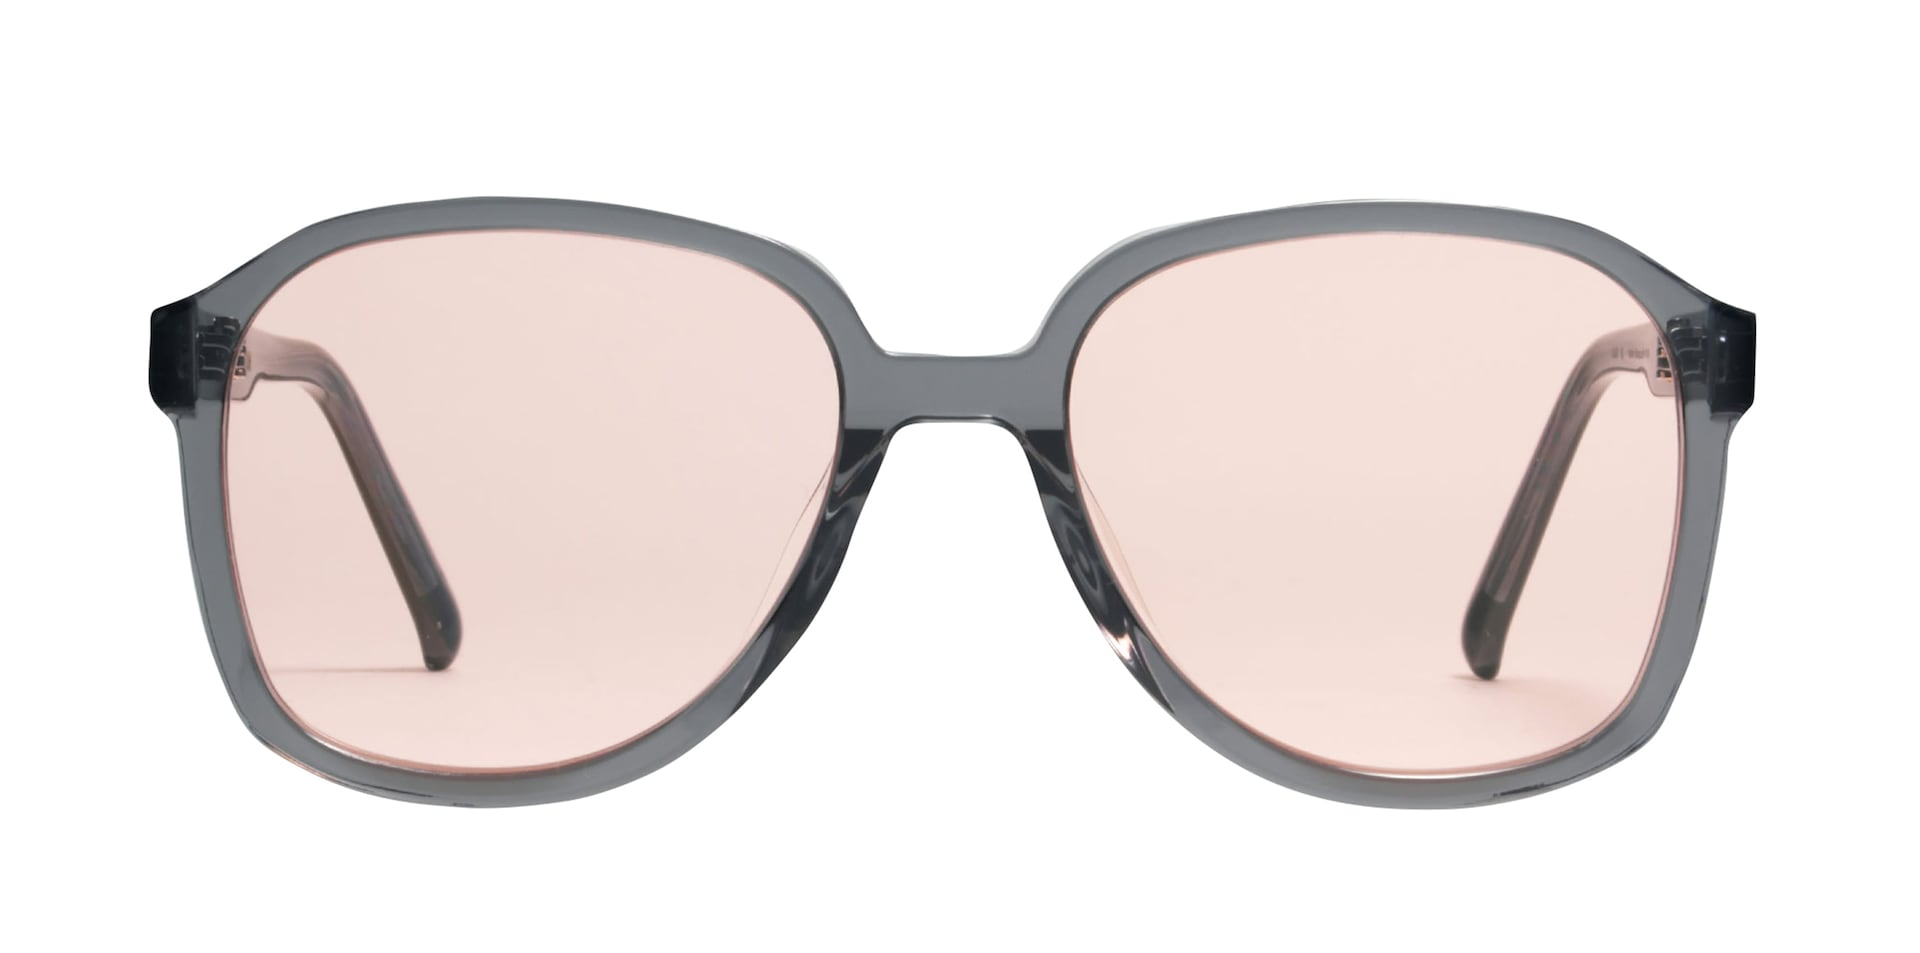 b4318421f3a KING G1. Oversized aviator sunglasses with pink tinted lenses ...